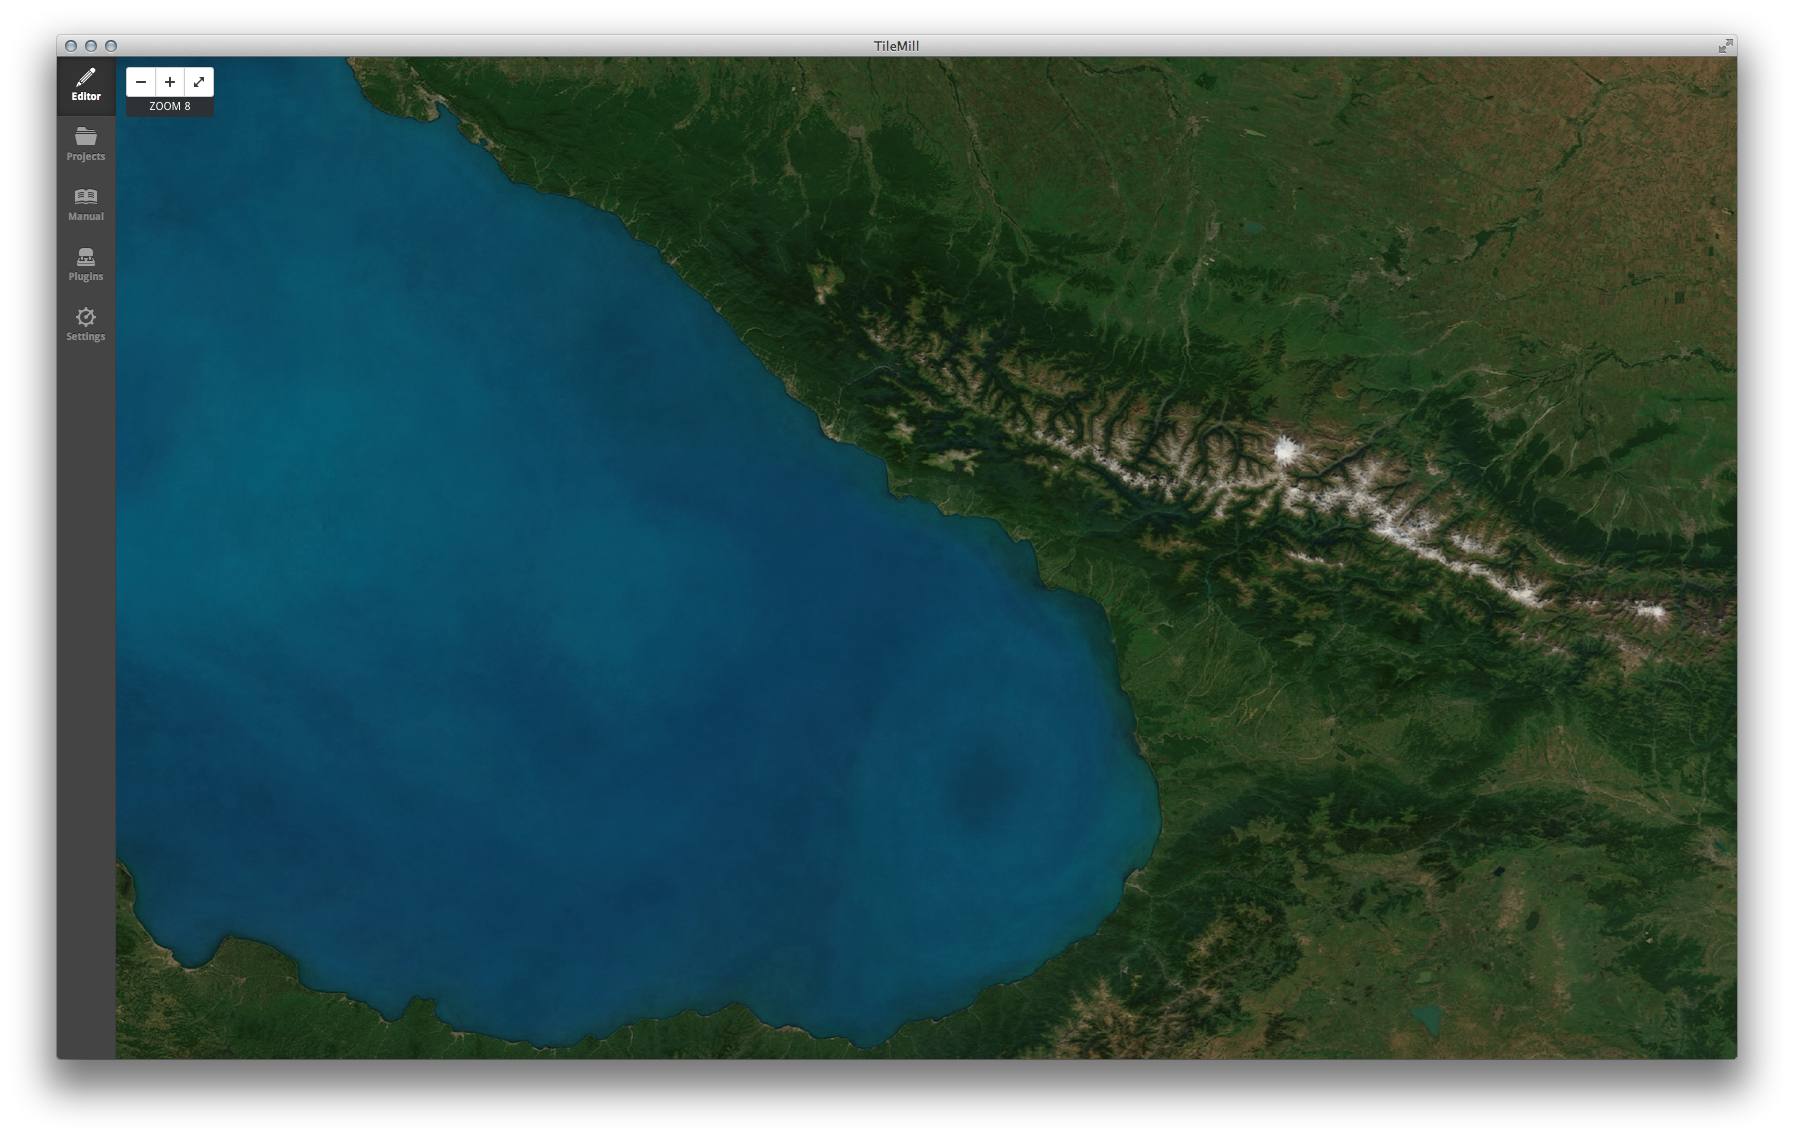 The eastern end of the Black Sea (latitude 42, longitude 40)